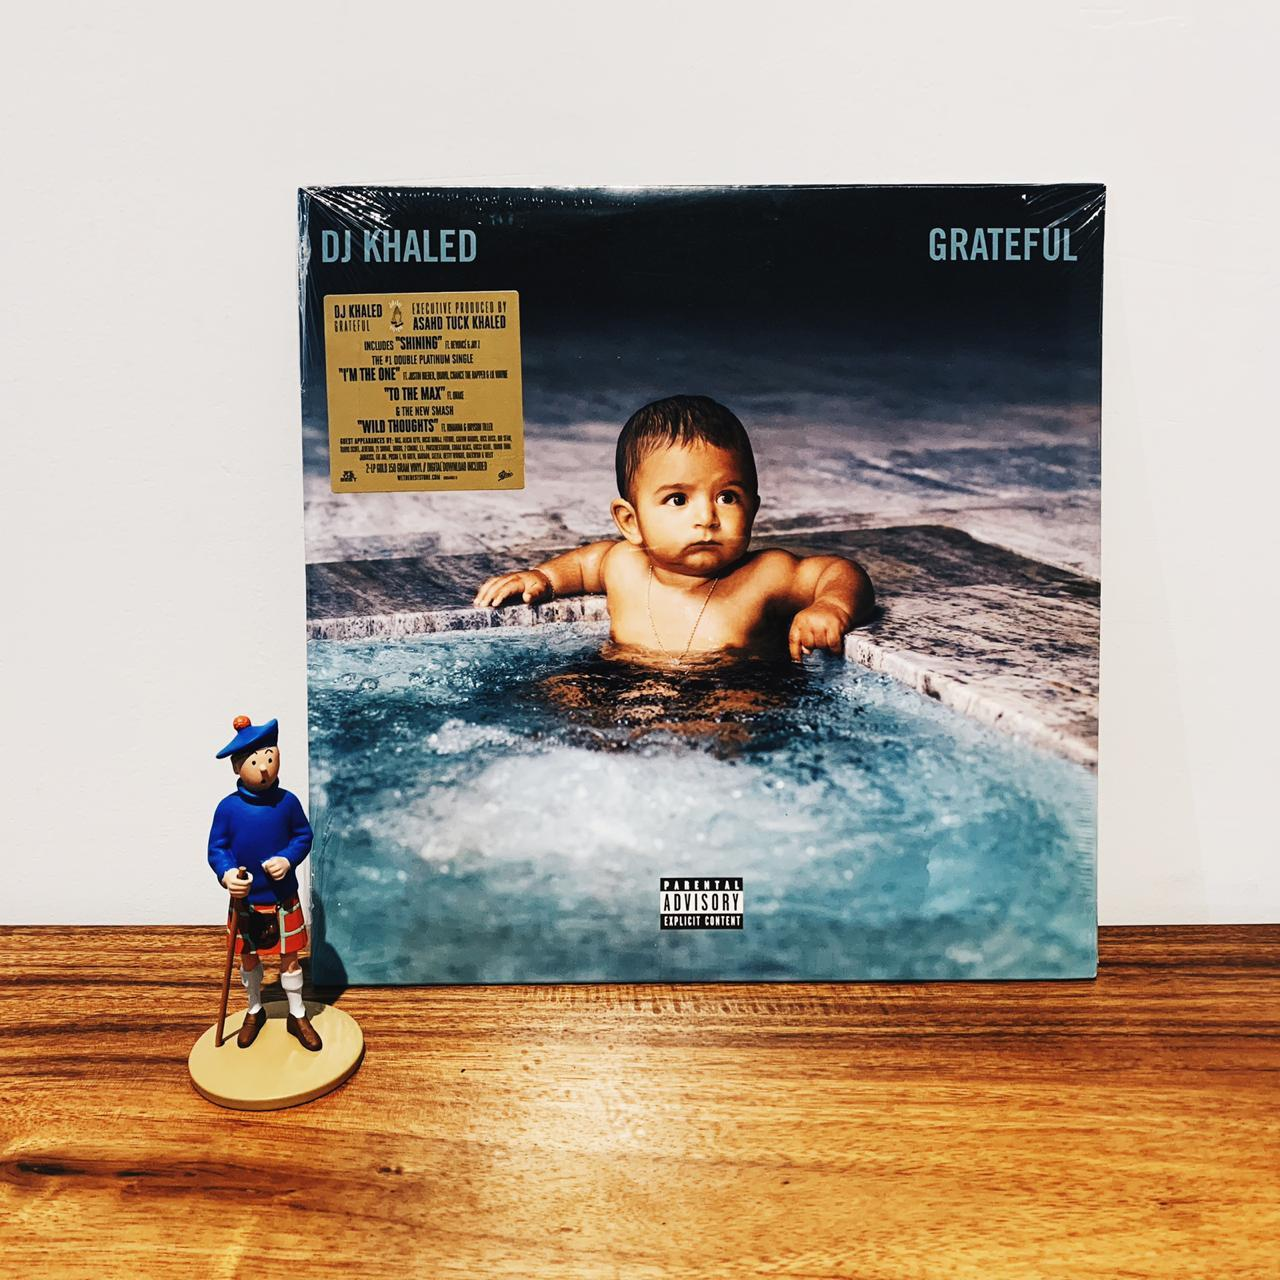 Piringan Hitam / Vinyl / Lp Dj Khaled - Grateful By Playlist Record Store.